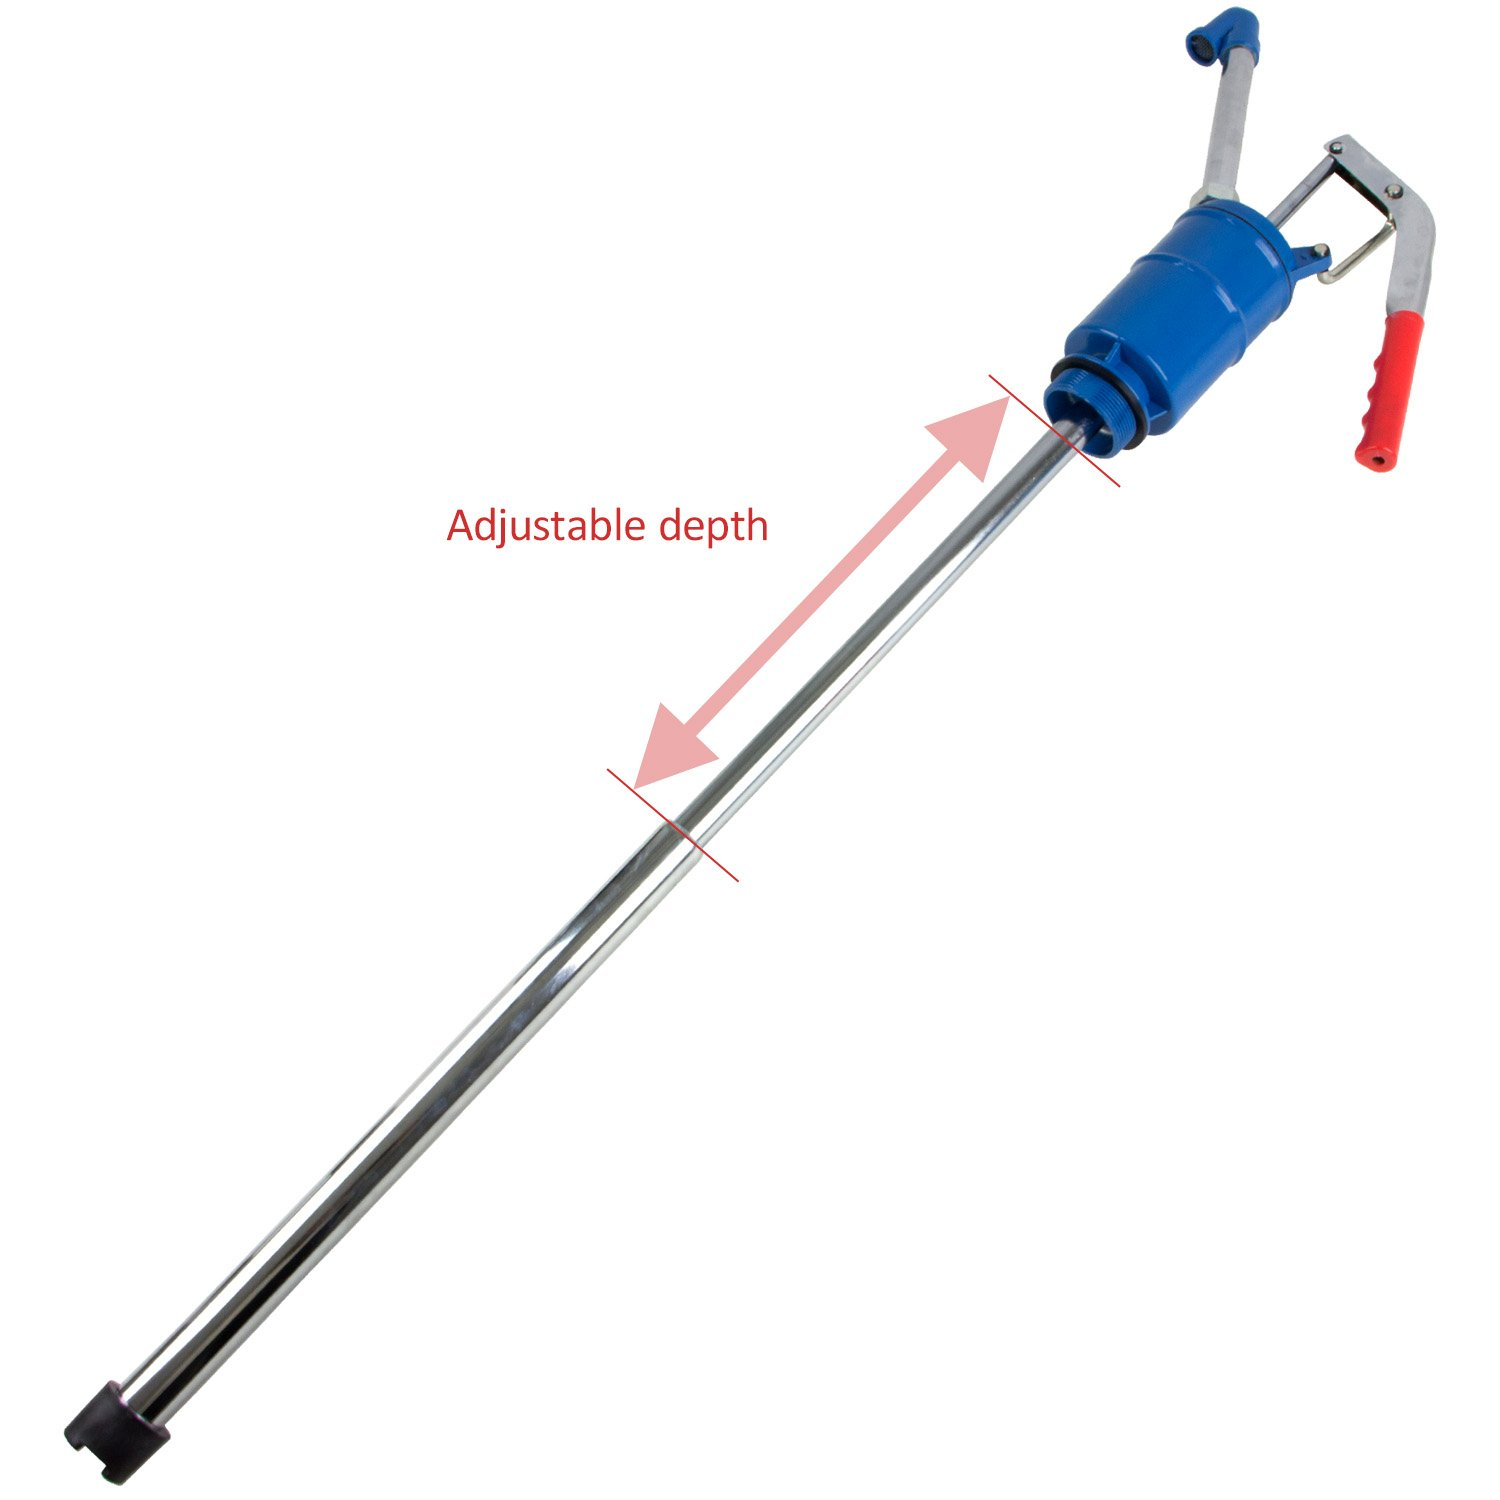 TERAPUMP High-Viscosity Hand Operated Lever-Action Drum Pump for Drum Barrels